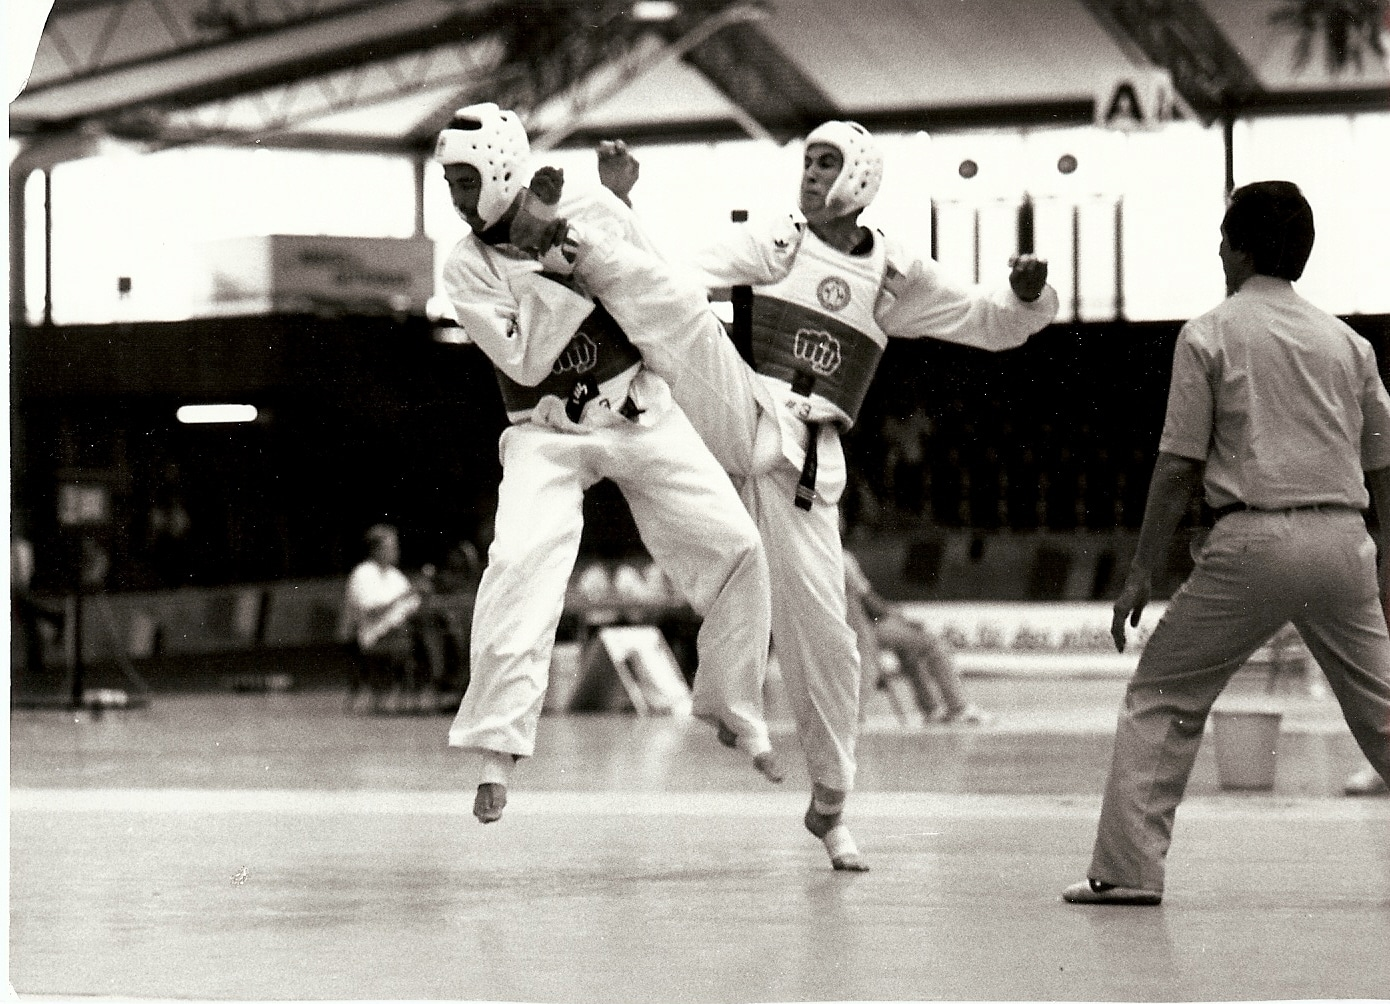 Grand Master Cooley competing at the 3rd World Games Karlsruhe, Germany – July 1989